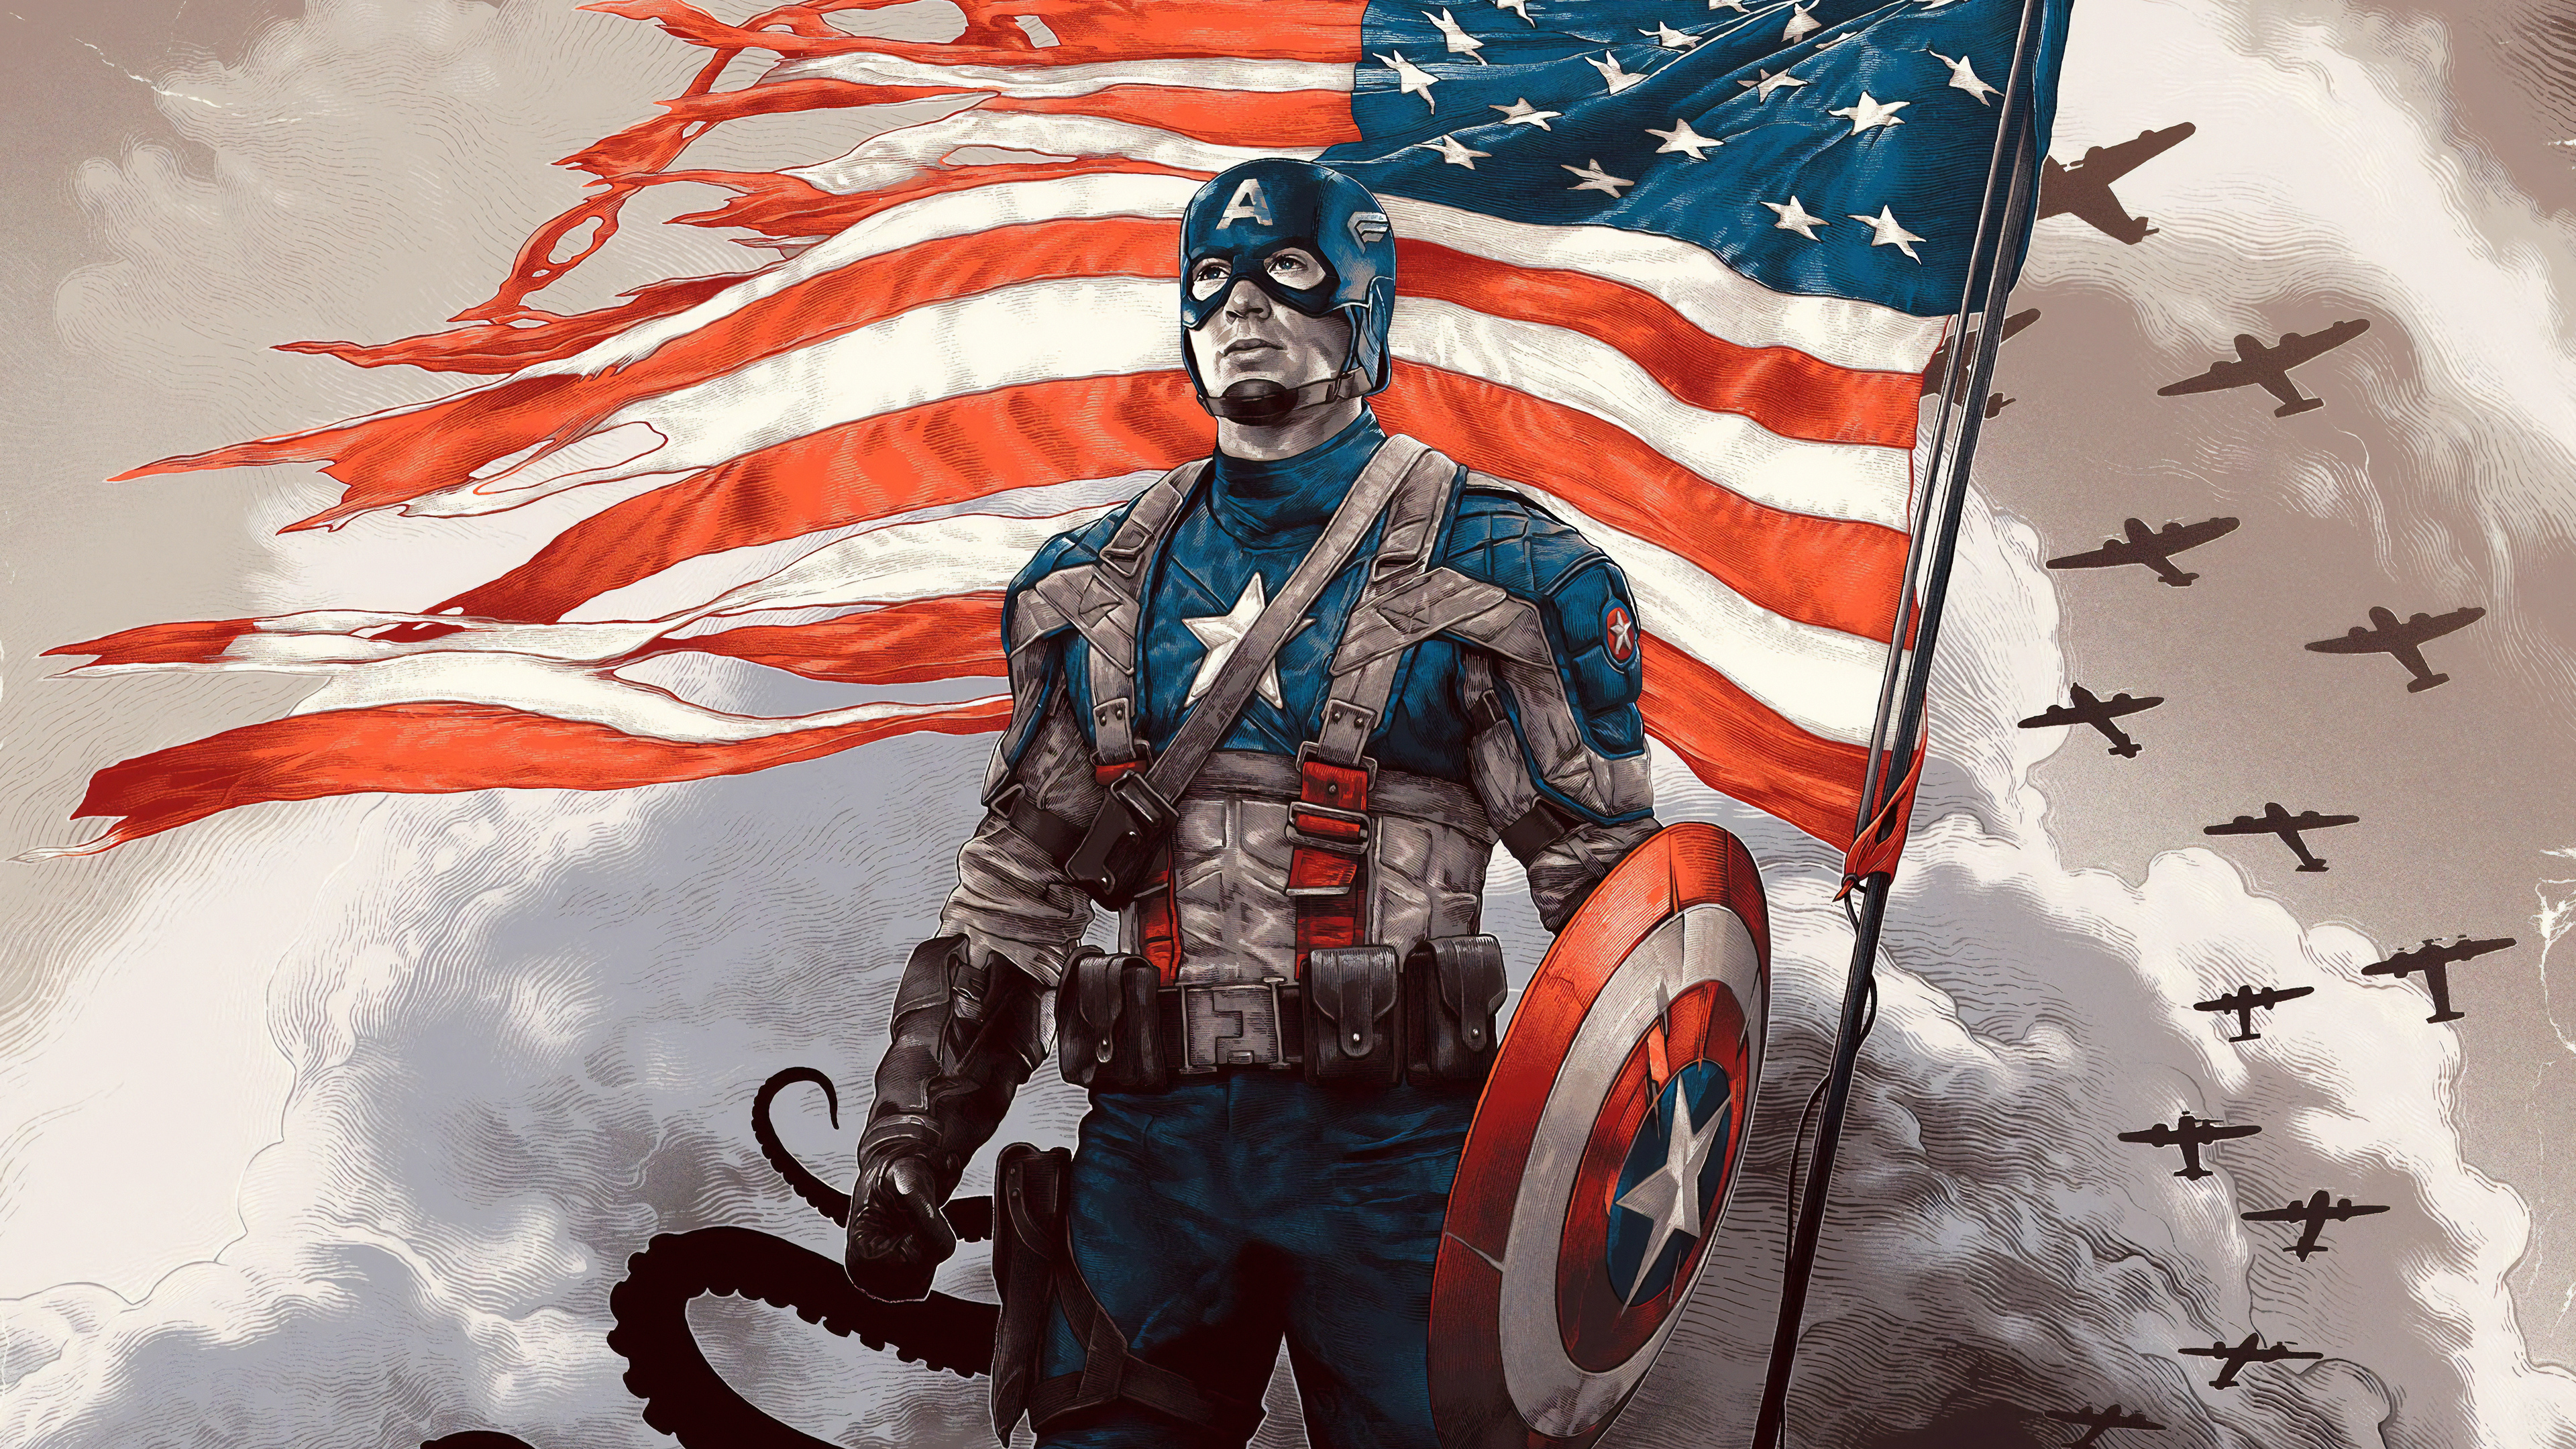 captain america movie poster art 1565052876 - Captain America Movie Poster Art - superheroes wallpapers, hd-wallpapers, digital art wallpapers, captain america wallpapers, artwork wallpapers, 4k-wallpapers